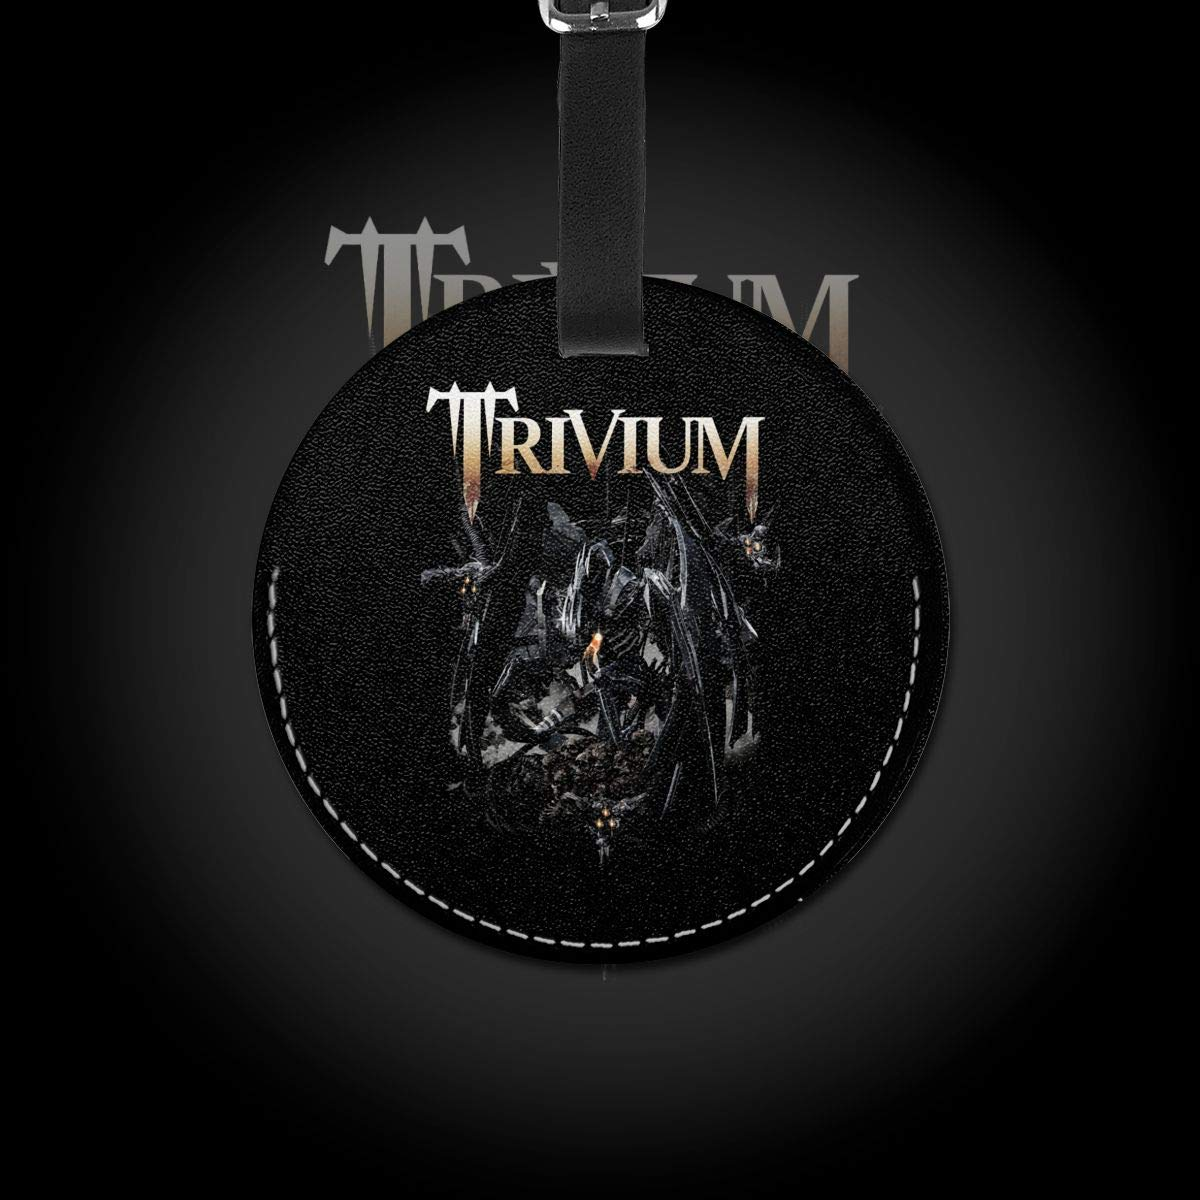 Trivium Travel Leather Round Luggage Tags Suitcase Labels Bag